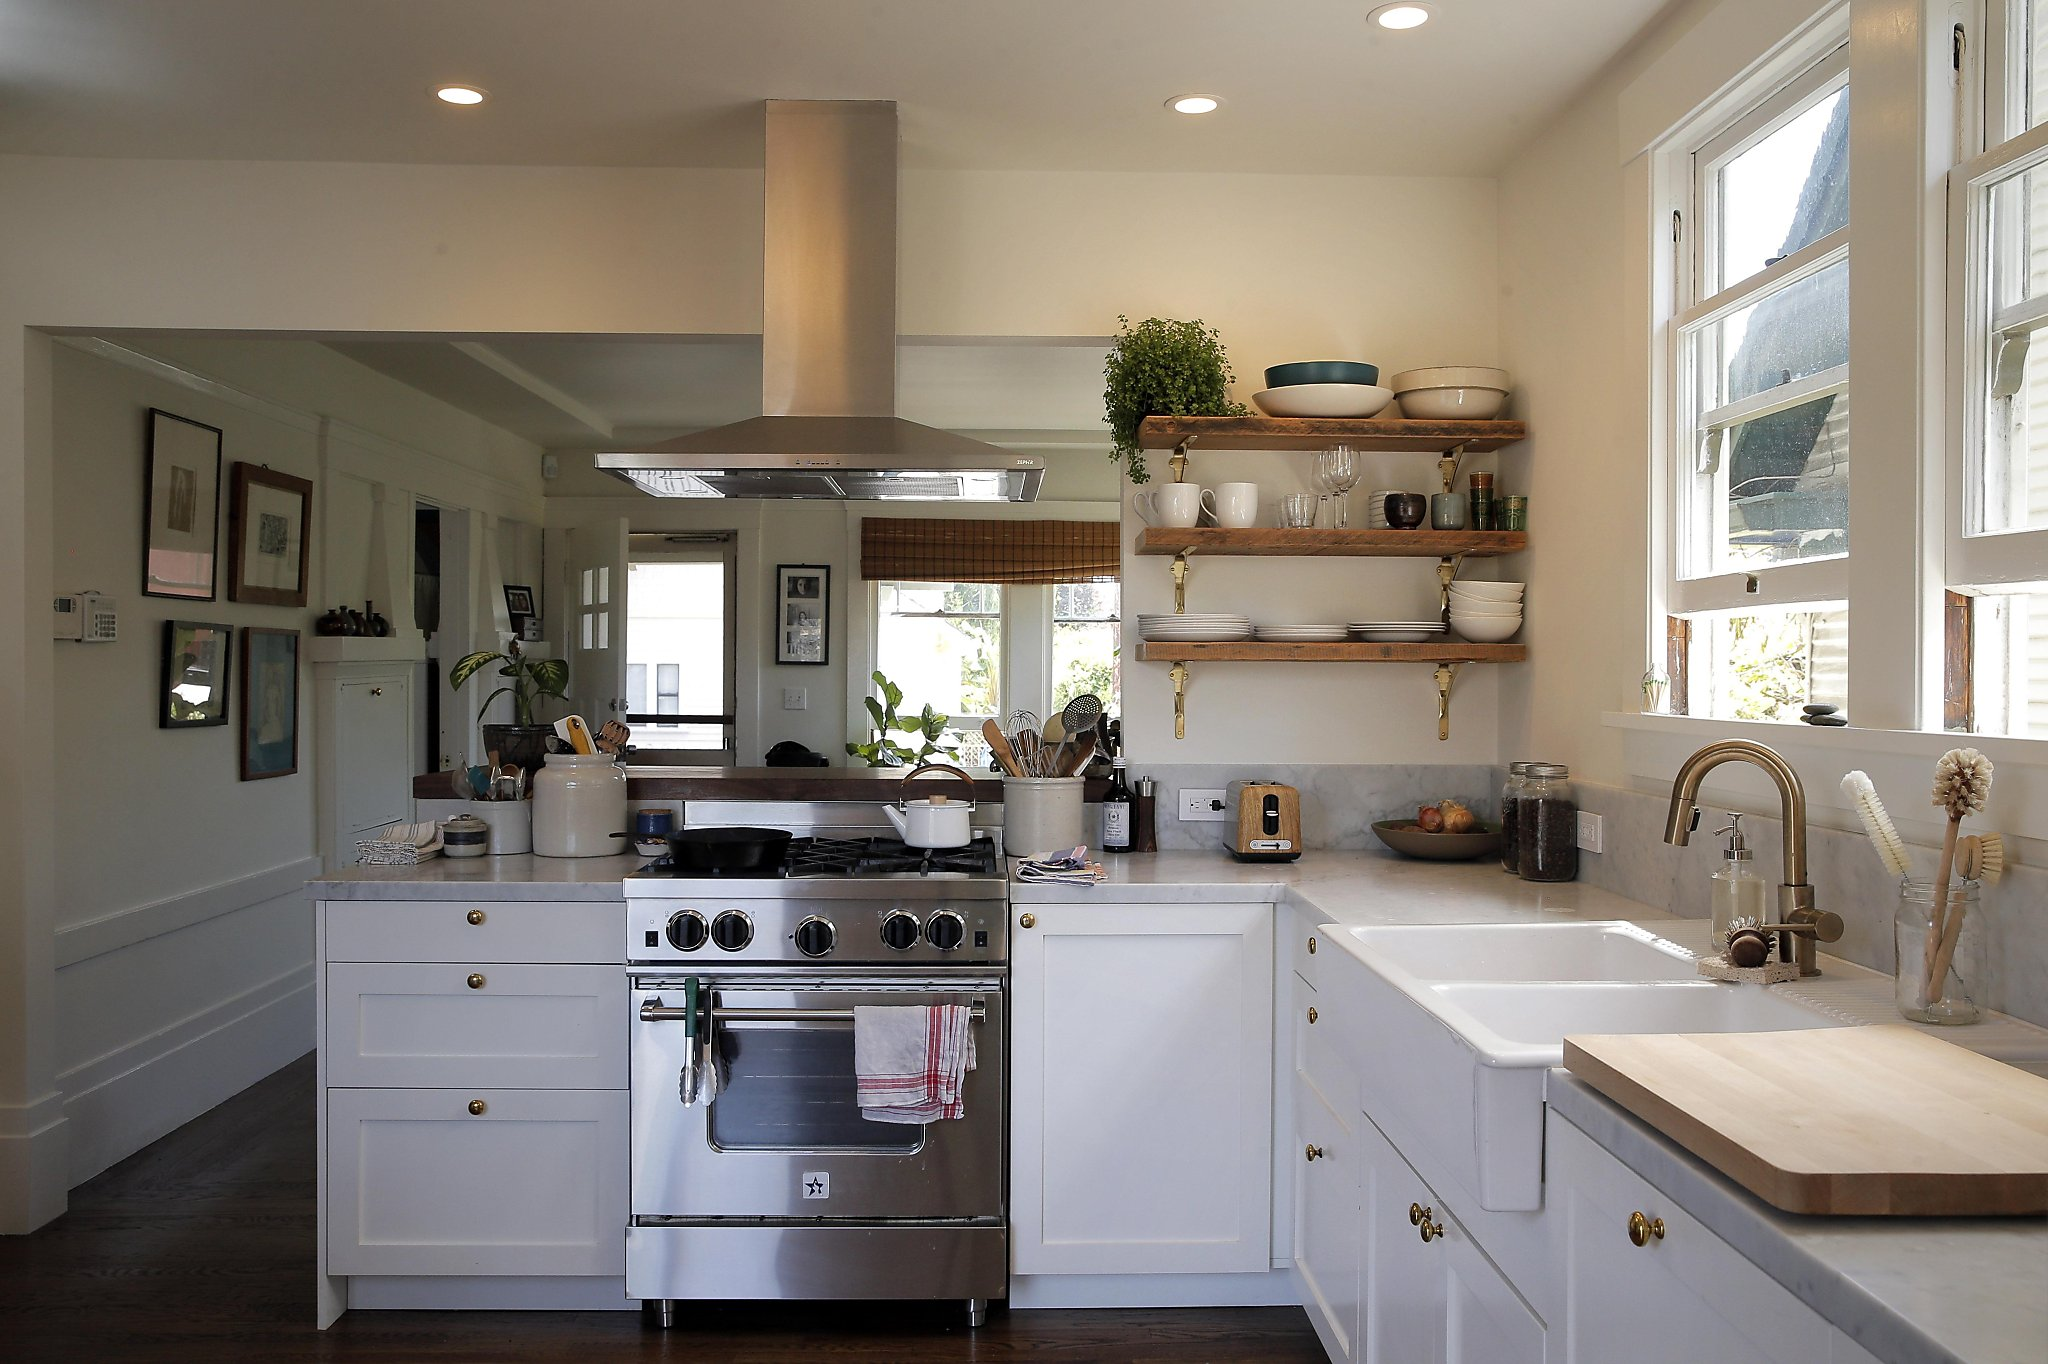 Chef S Kitchen Adds Light Flow To Entire Oakland Home Remodel